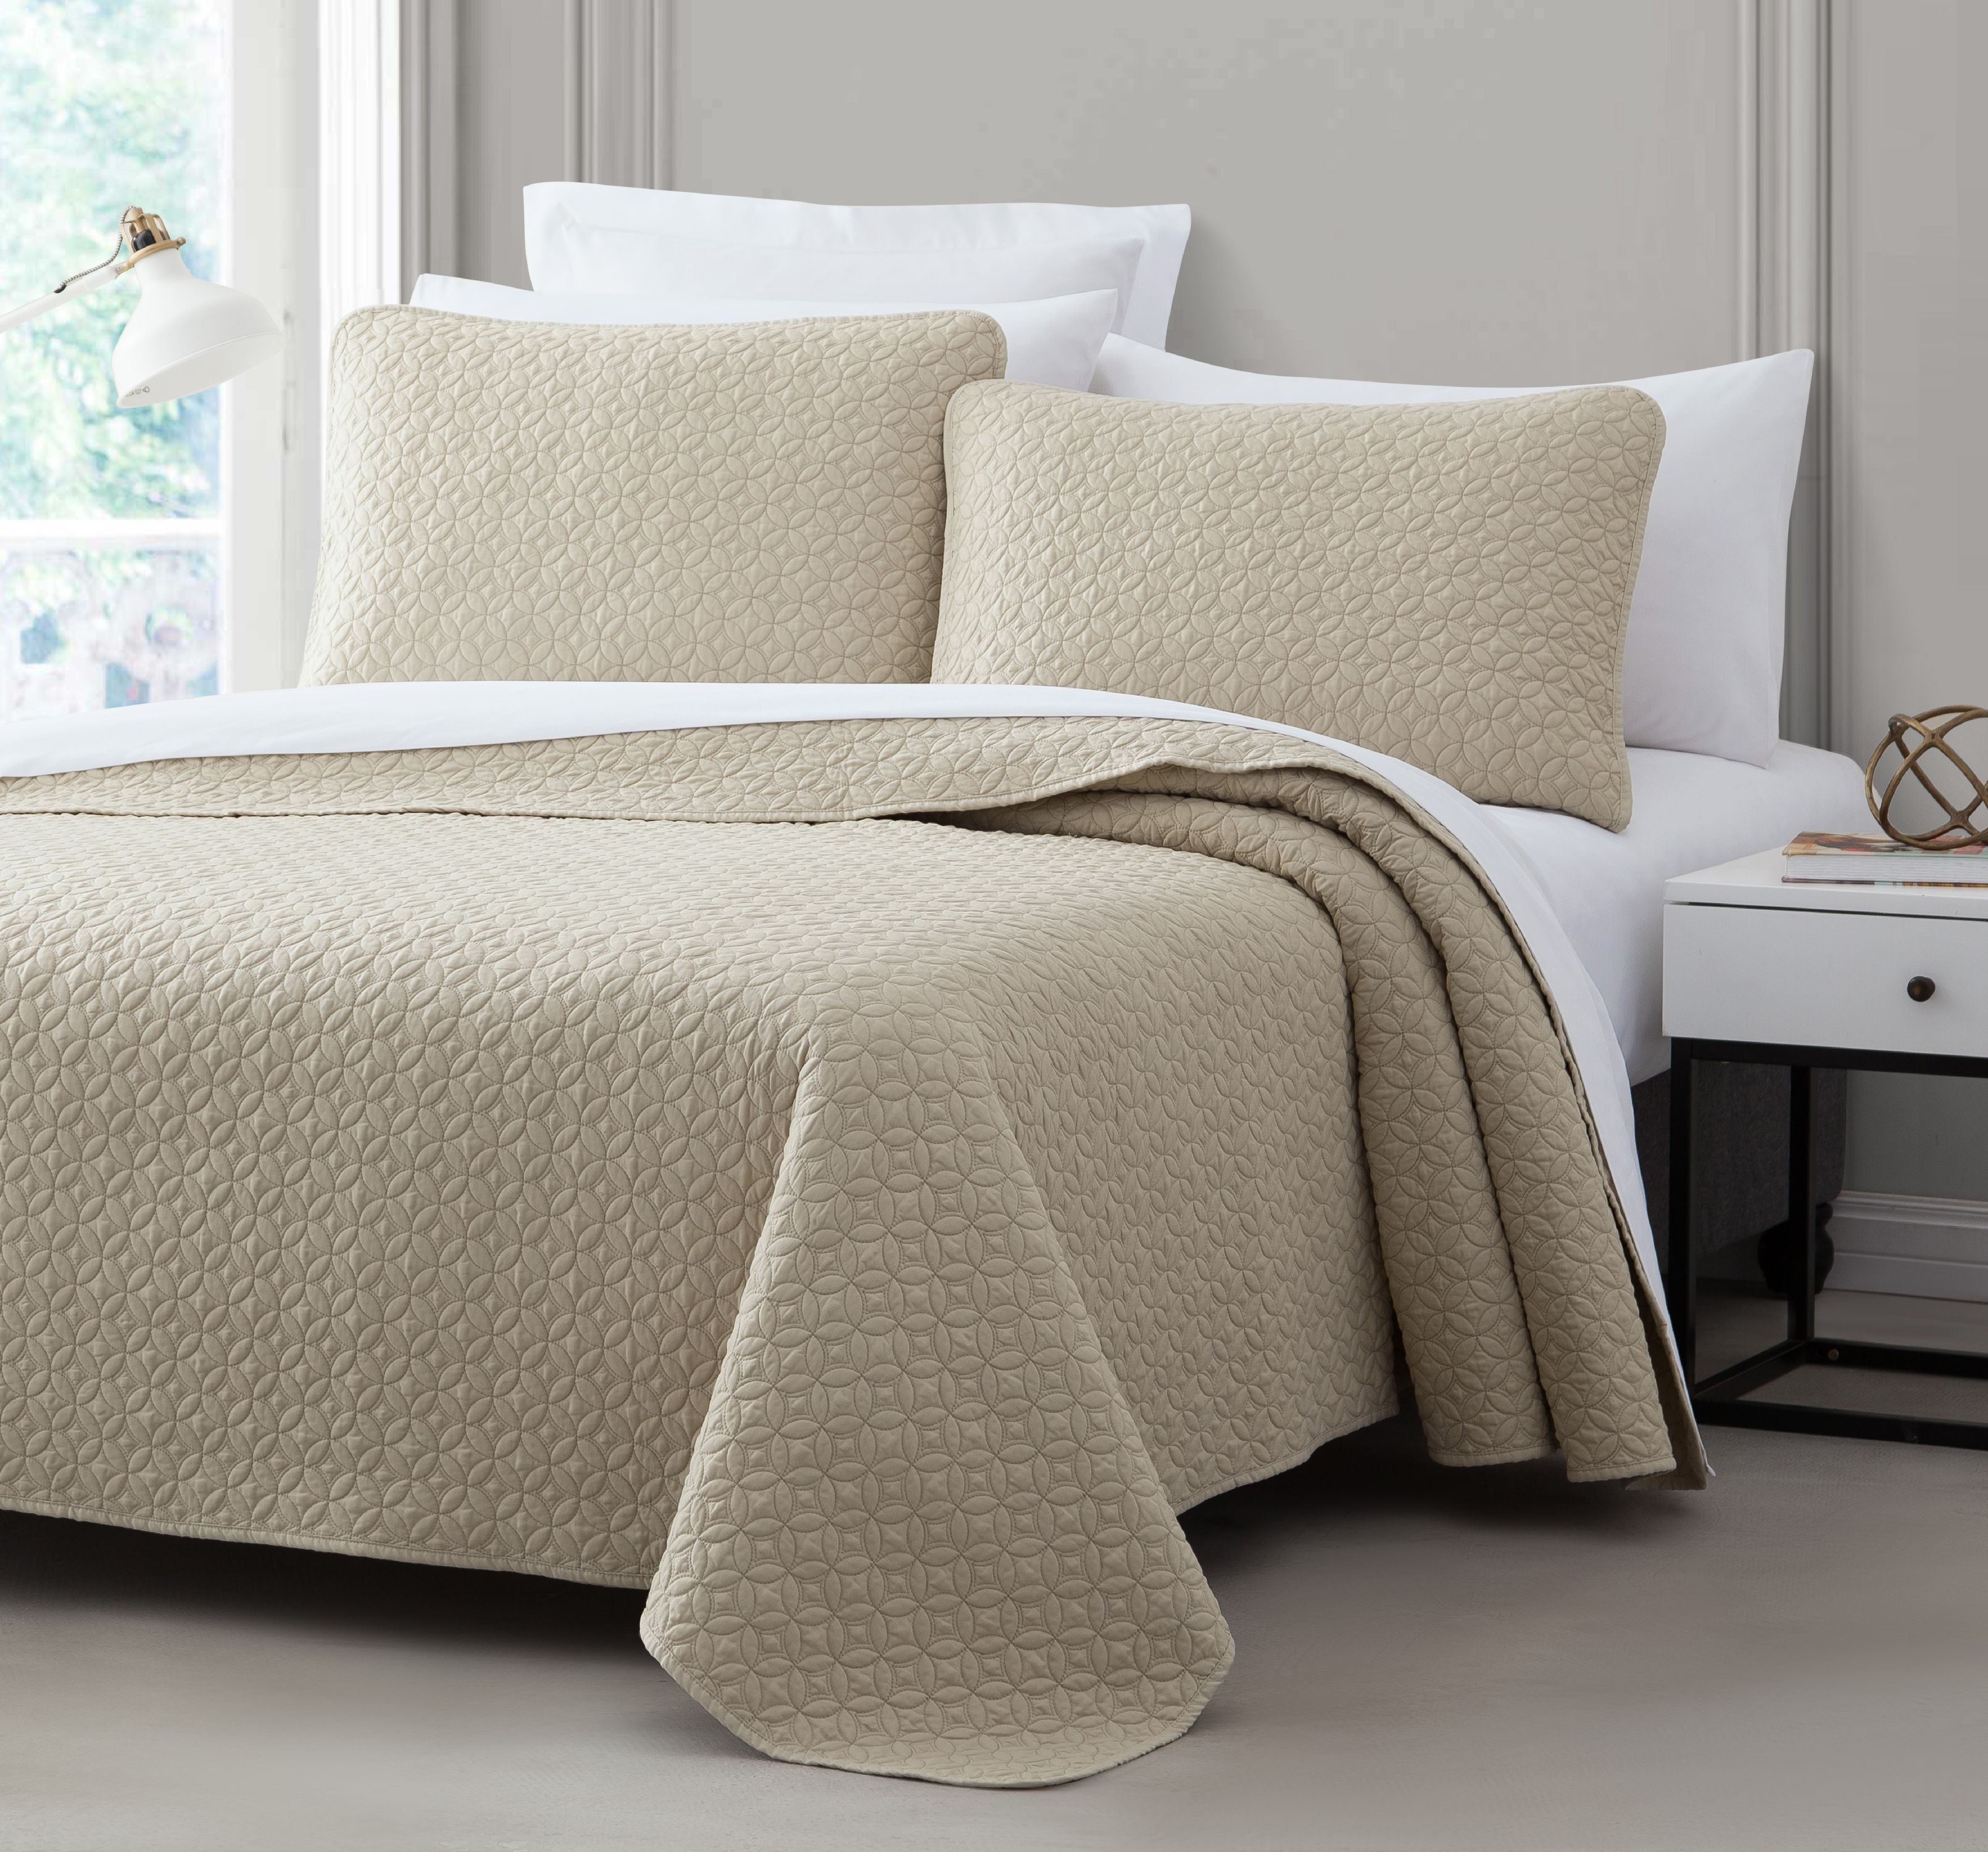 Cozy Beddings Titan 2-Piece Bedspread Coverlet Set